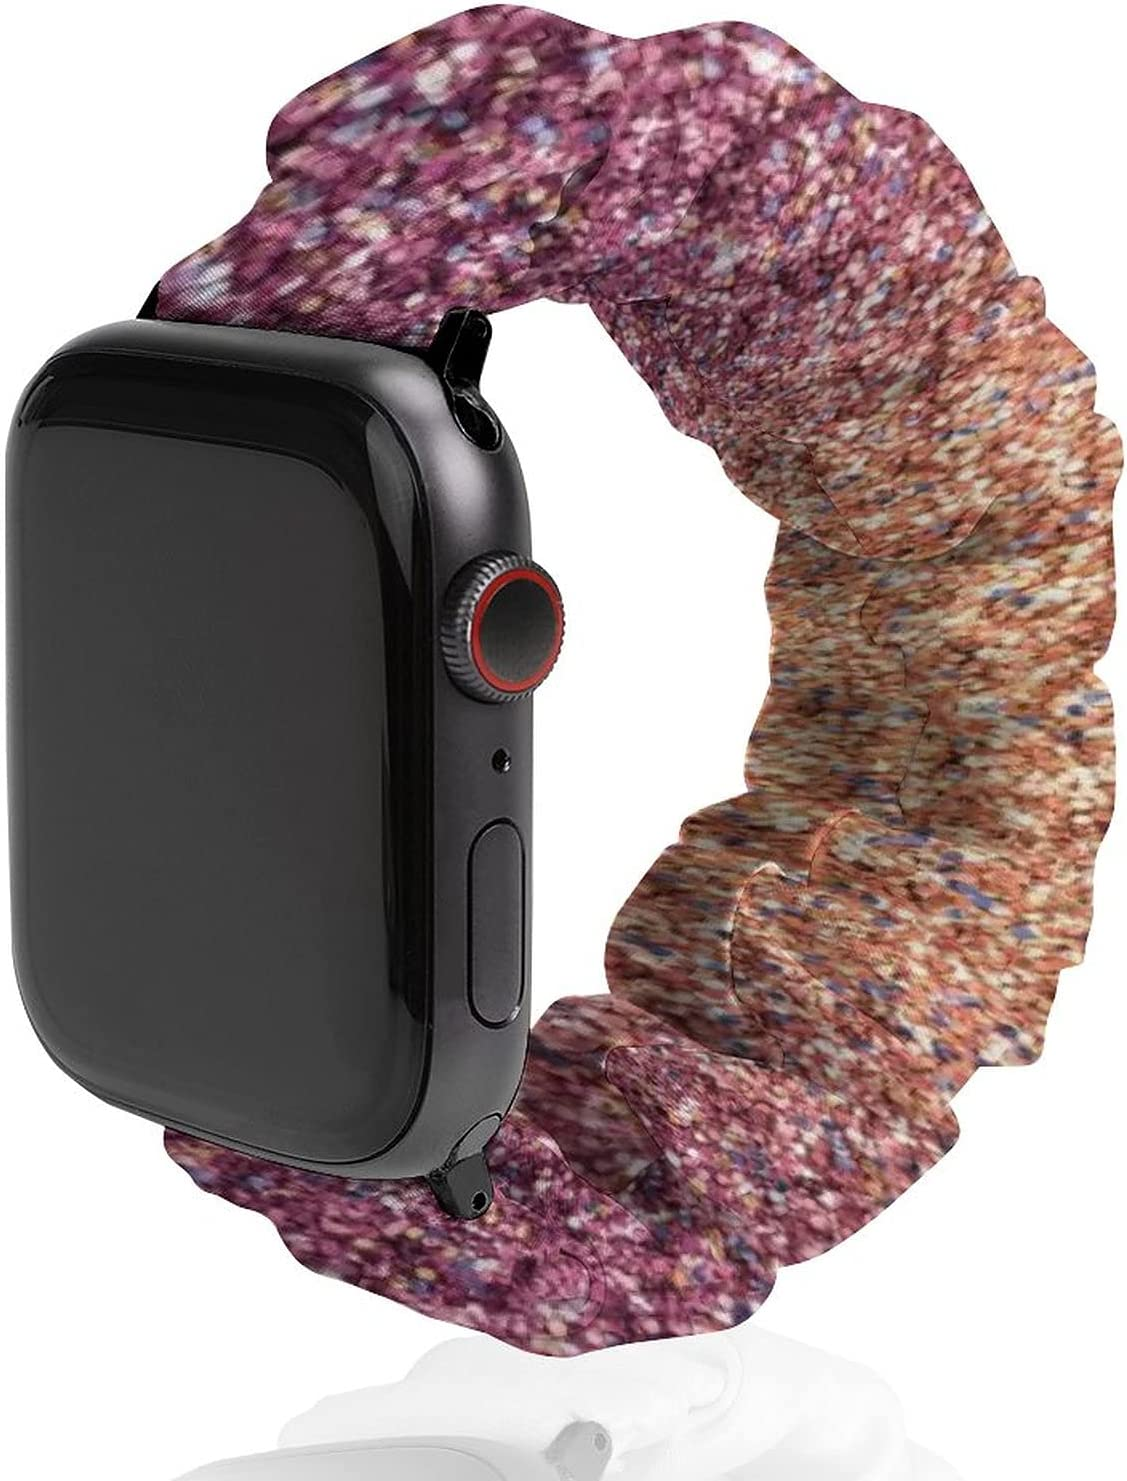 NiYoung Purple Orange Glitter Sparkles Watch Strap Compatible with Apple Elastic Watch Bands 38mm/40mm,42mm/44mm Sport Band Compatible with Iwatch Series 6/5/4/3/2/1 for Women Girls